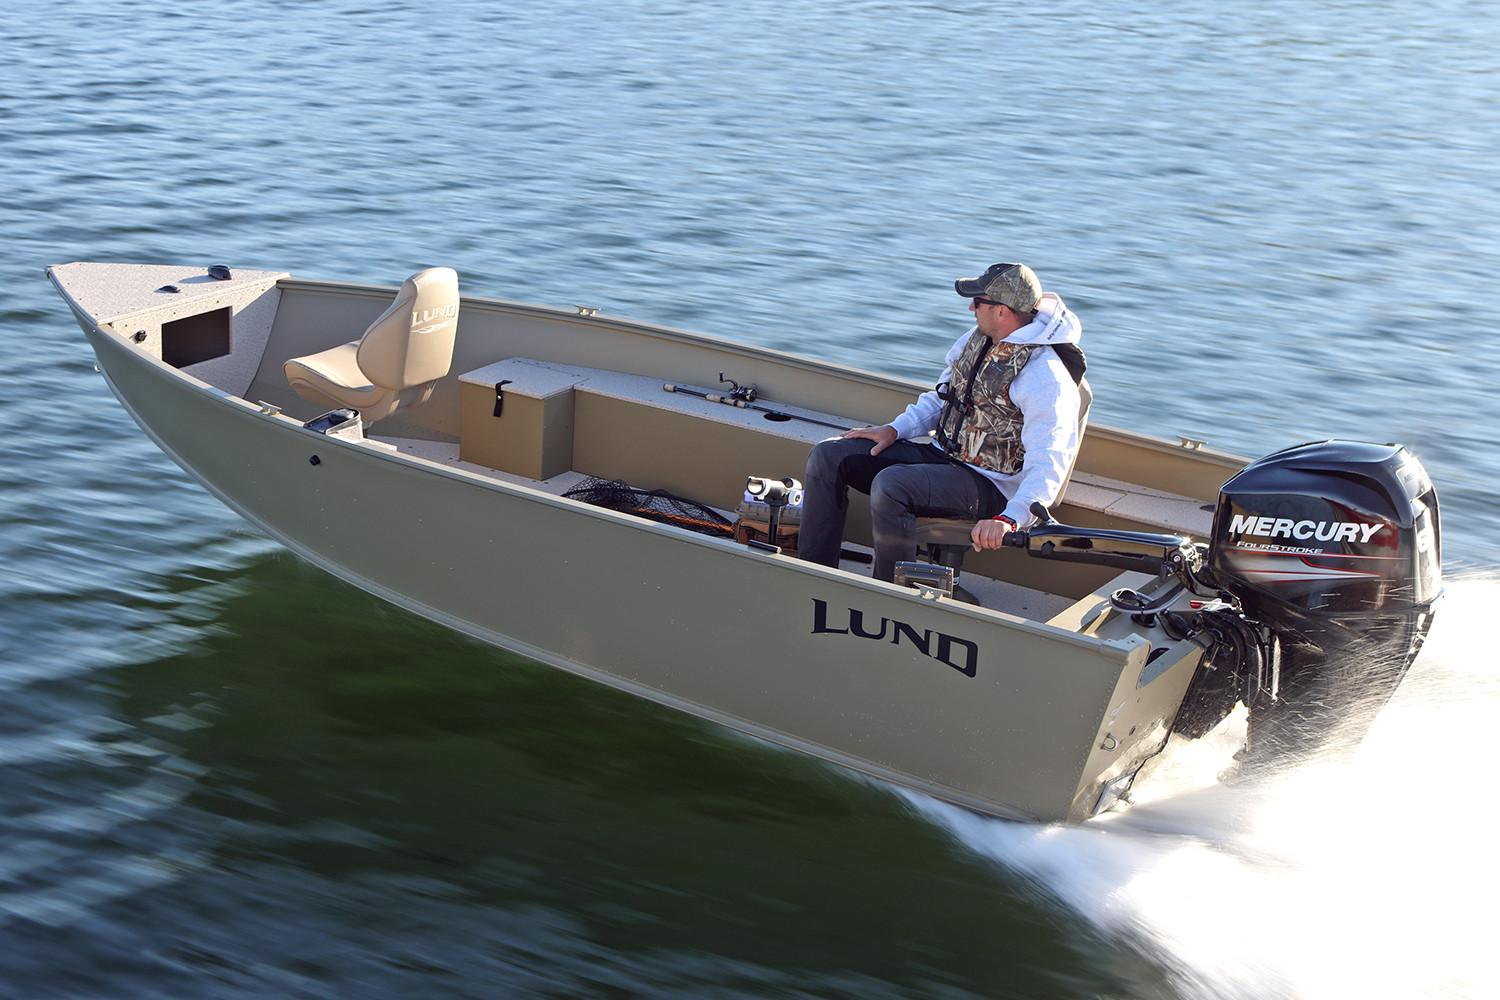 Lund Boat image